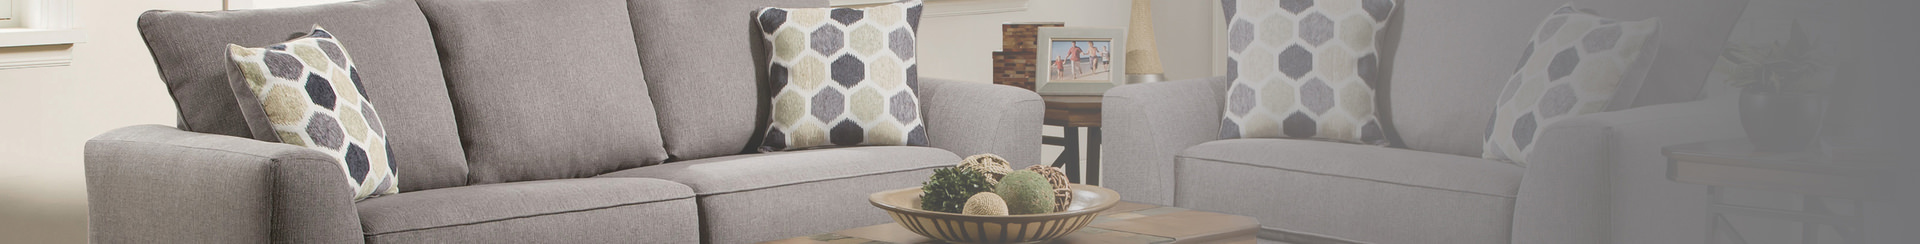 Affordable Sofas, Couches and Loveseats – DOCK